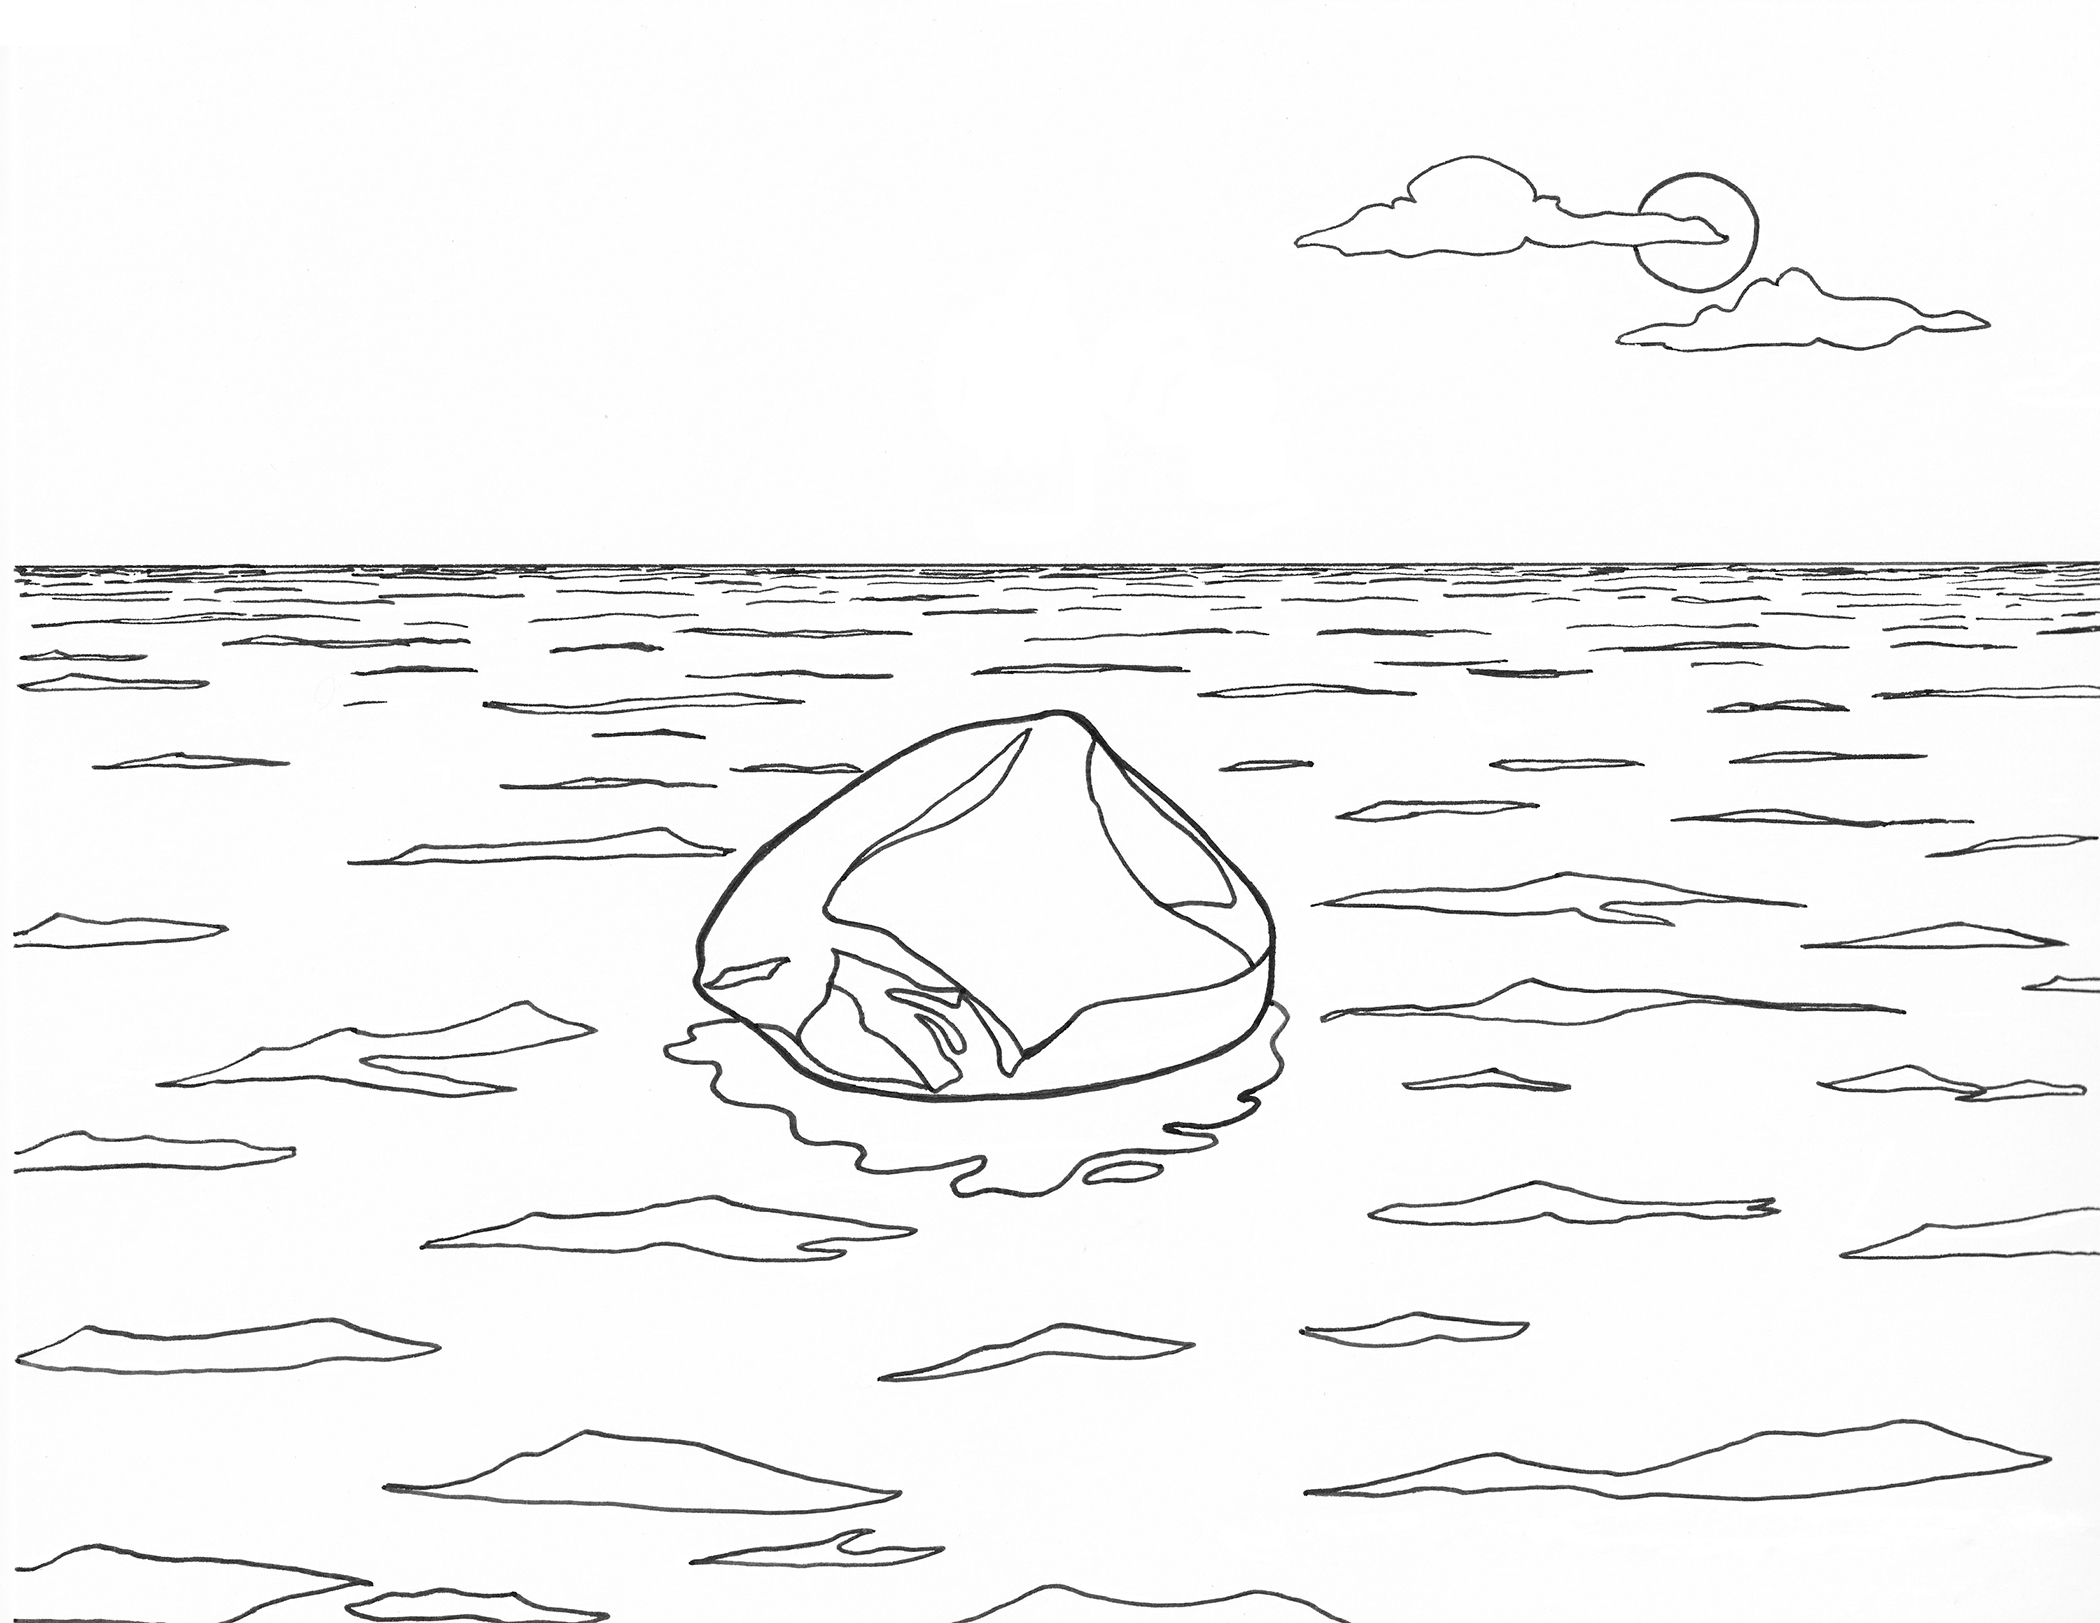 Coloring page inspired by Zhan Wang, Beyond 12 Nautical Miles—Floating Rock Drifts on the Open Sea, 2000. Drawn by Erik L. Peterson for the Smart Museum of Art at the University of Chicago.